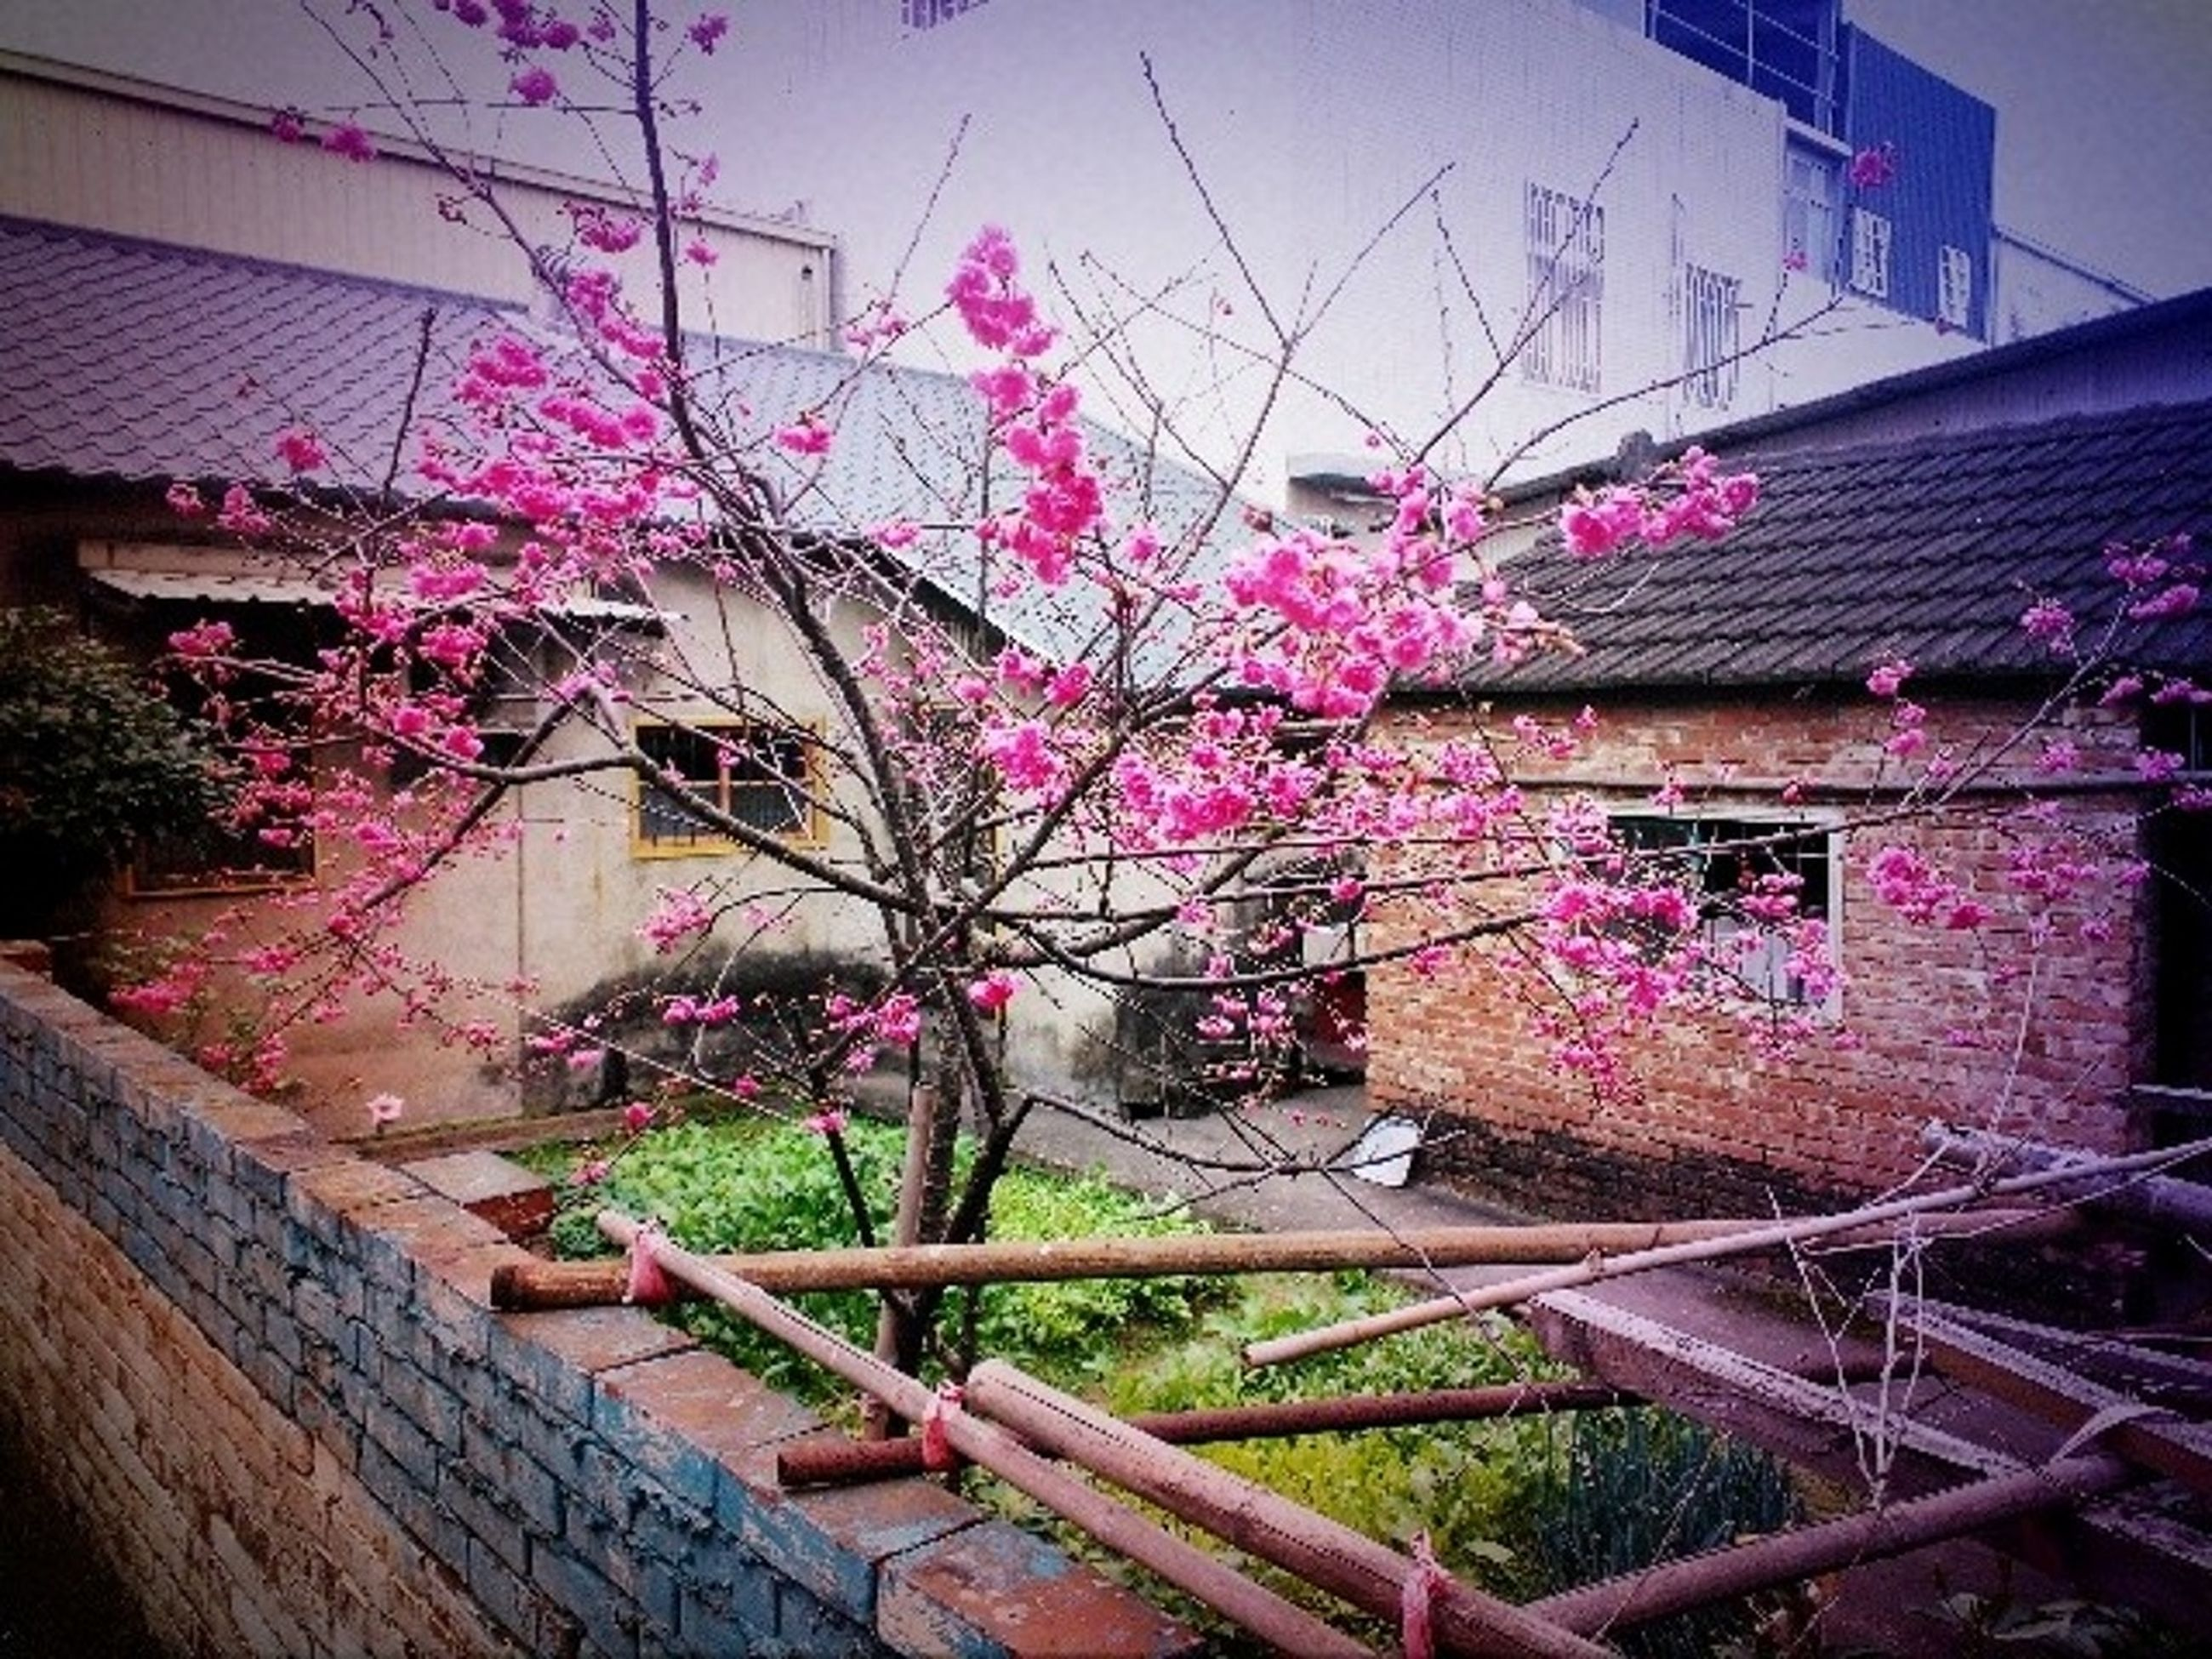 flower, built structure, architecture, building exterior, pink color, growth, freshness, fragility, plant, house, blossom, nature, in bloom, blooming, railing, beauty in nature, potted plant, day, outdoors, no people